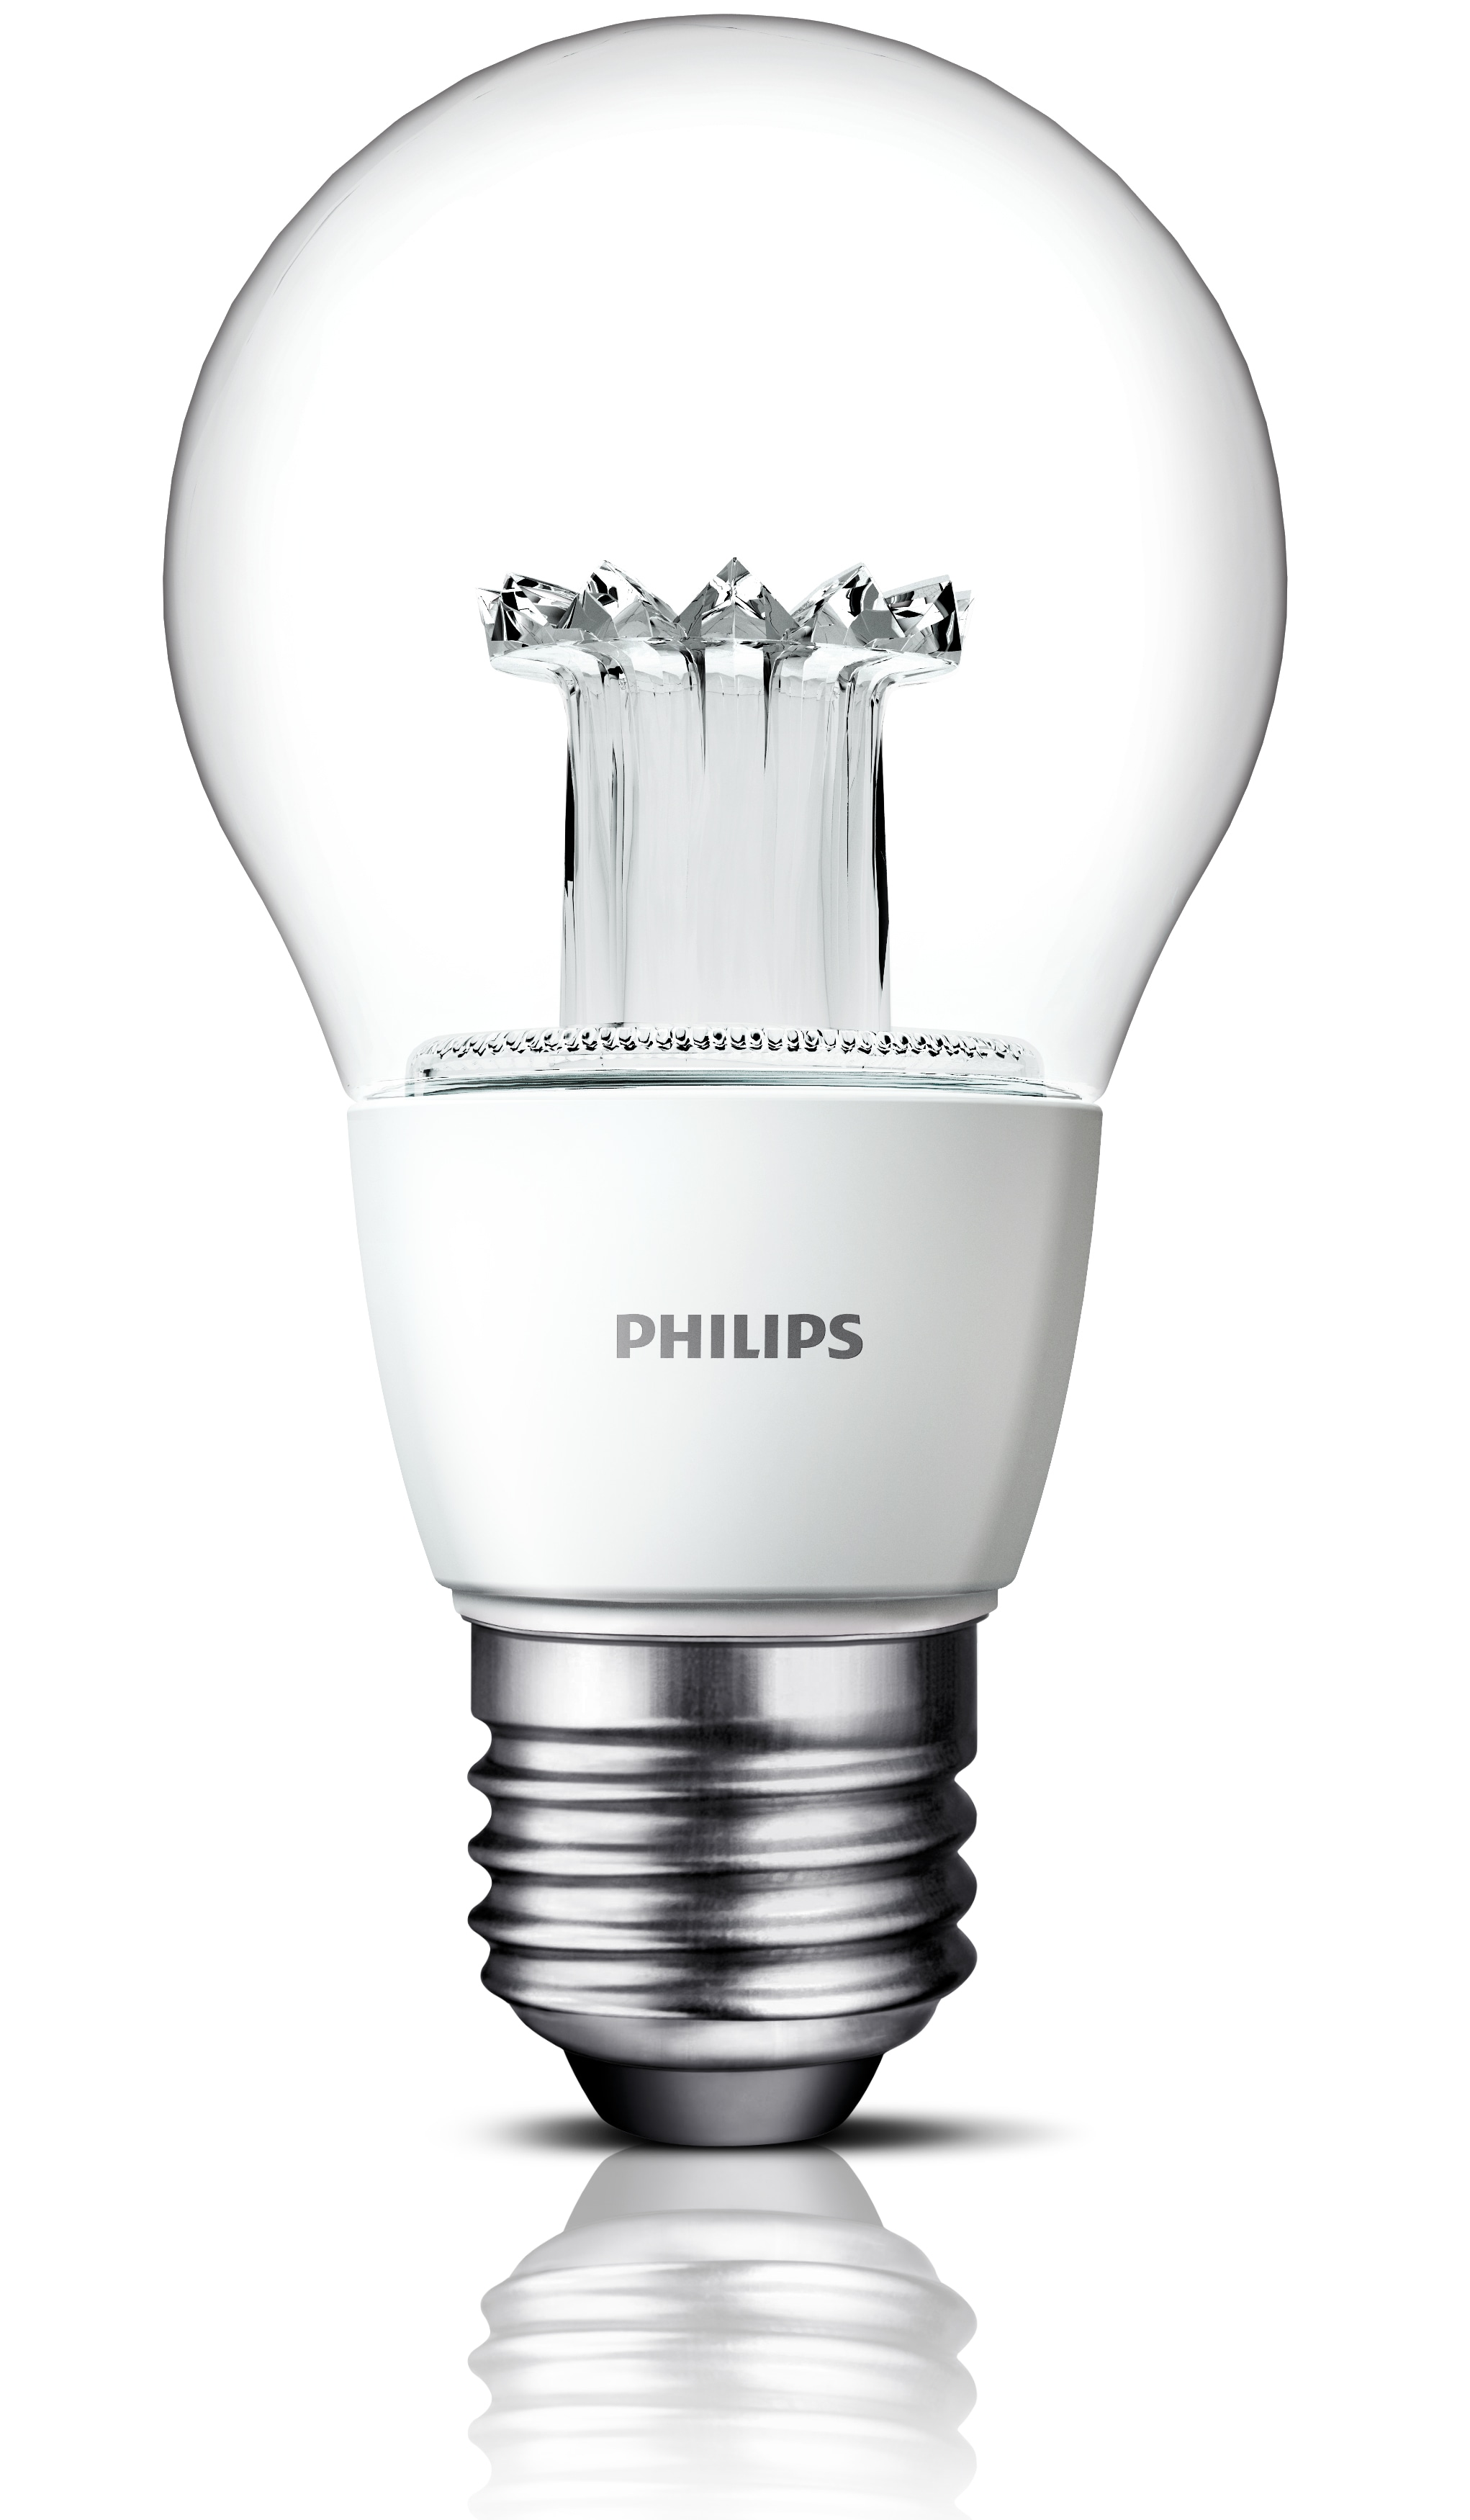 Philips Brings The Traditional Light Bulb Into The 21st Century